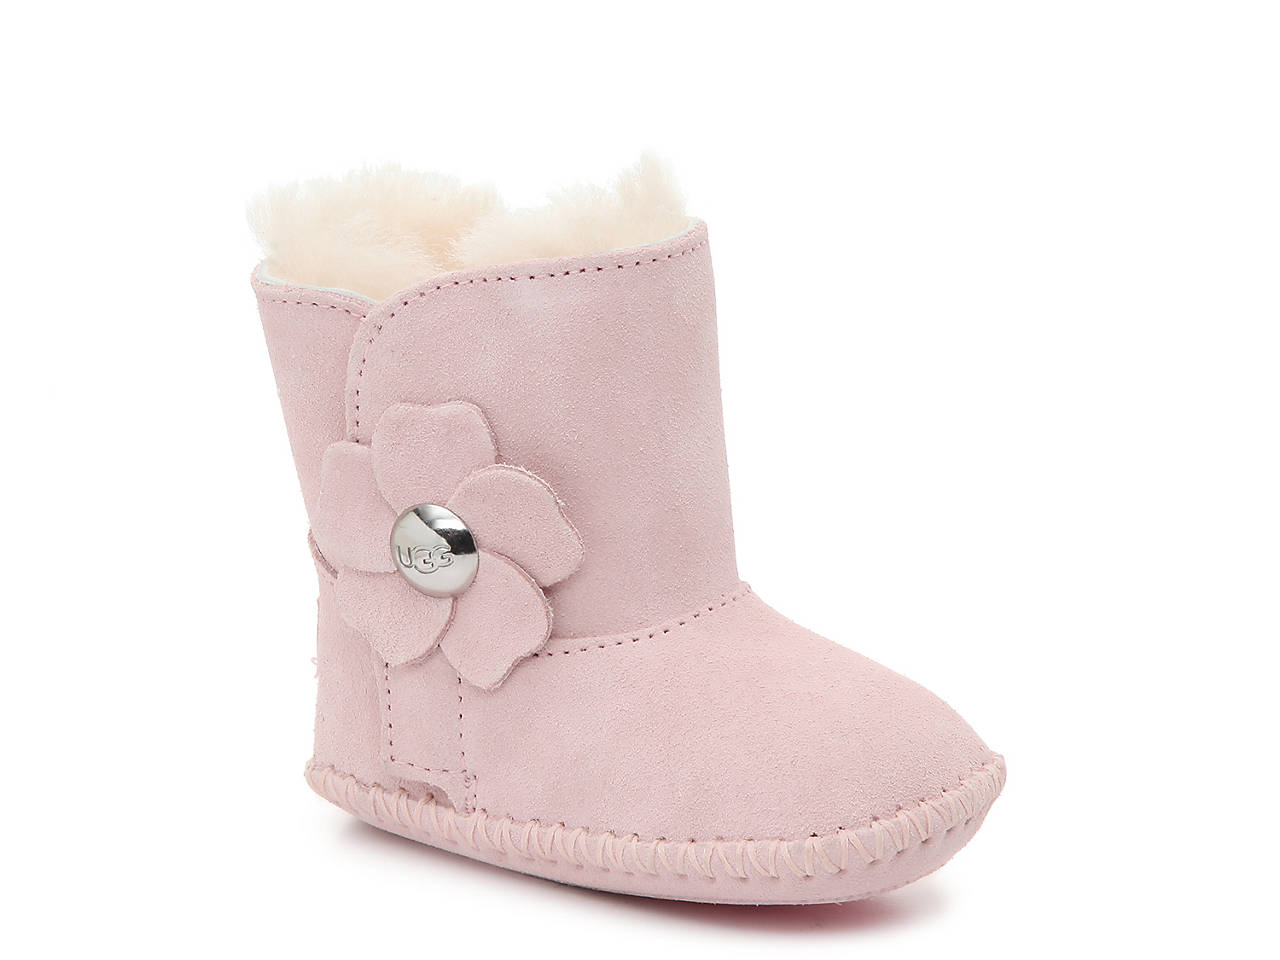 UGG Cassie Boot Kids' Kids Shoes | DSW